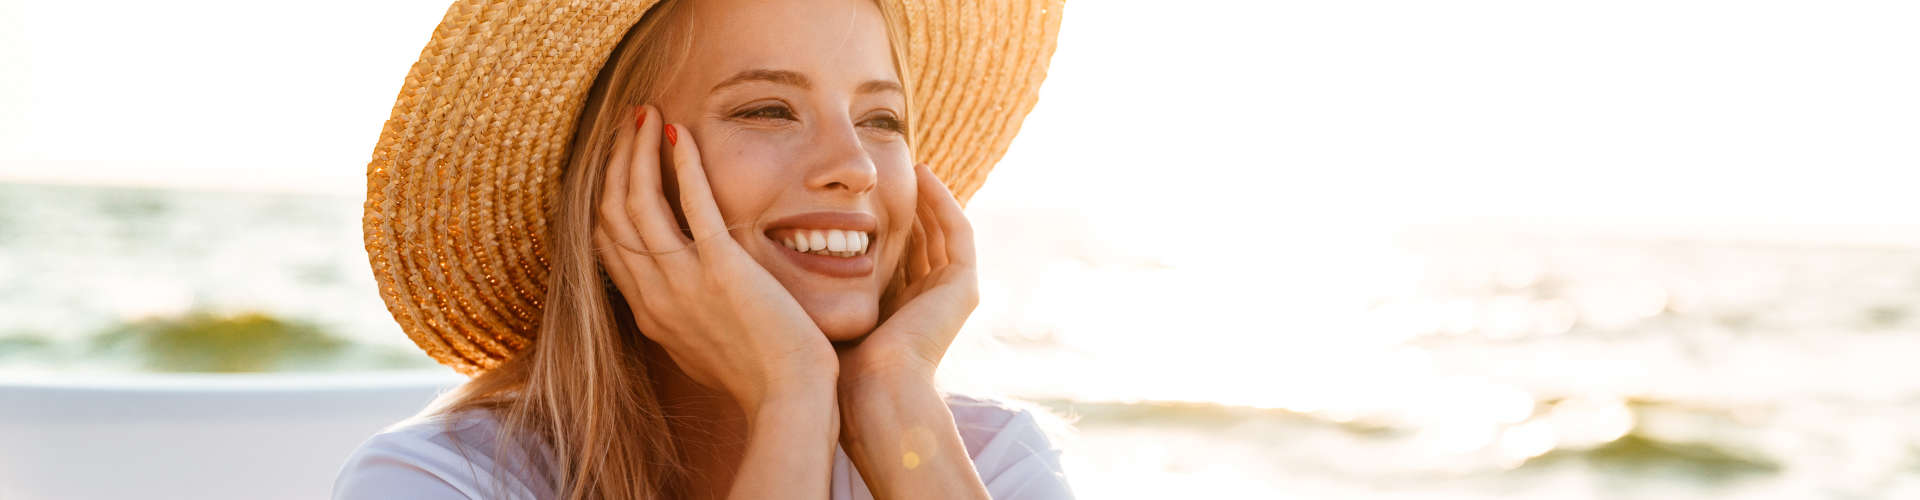 Cheerful woman 20s in straw hat smiling while sitting in lounge chair at seaside during summer morning.